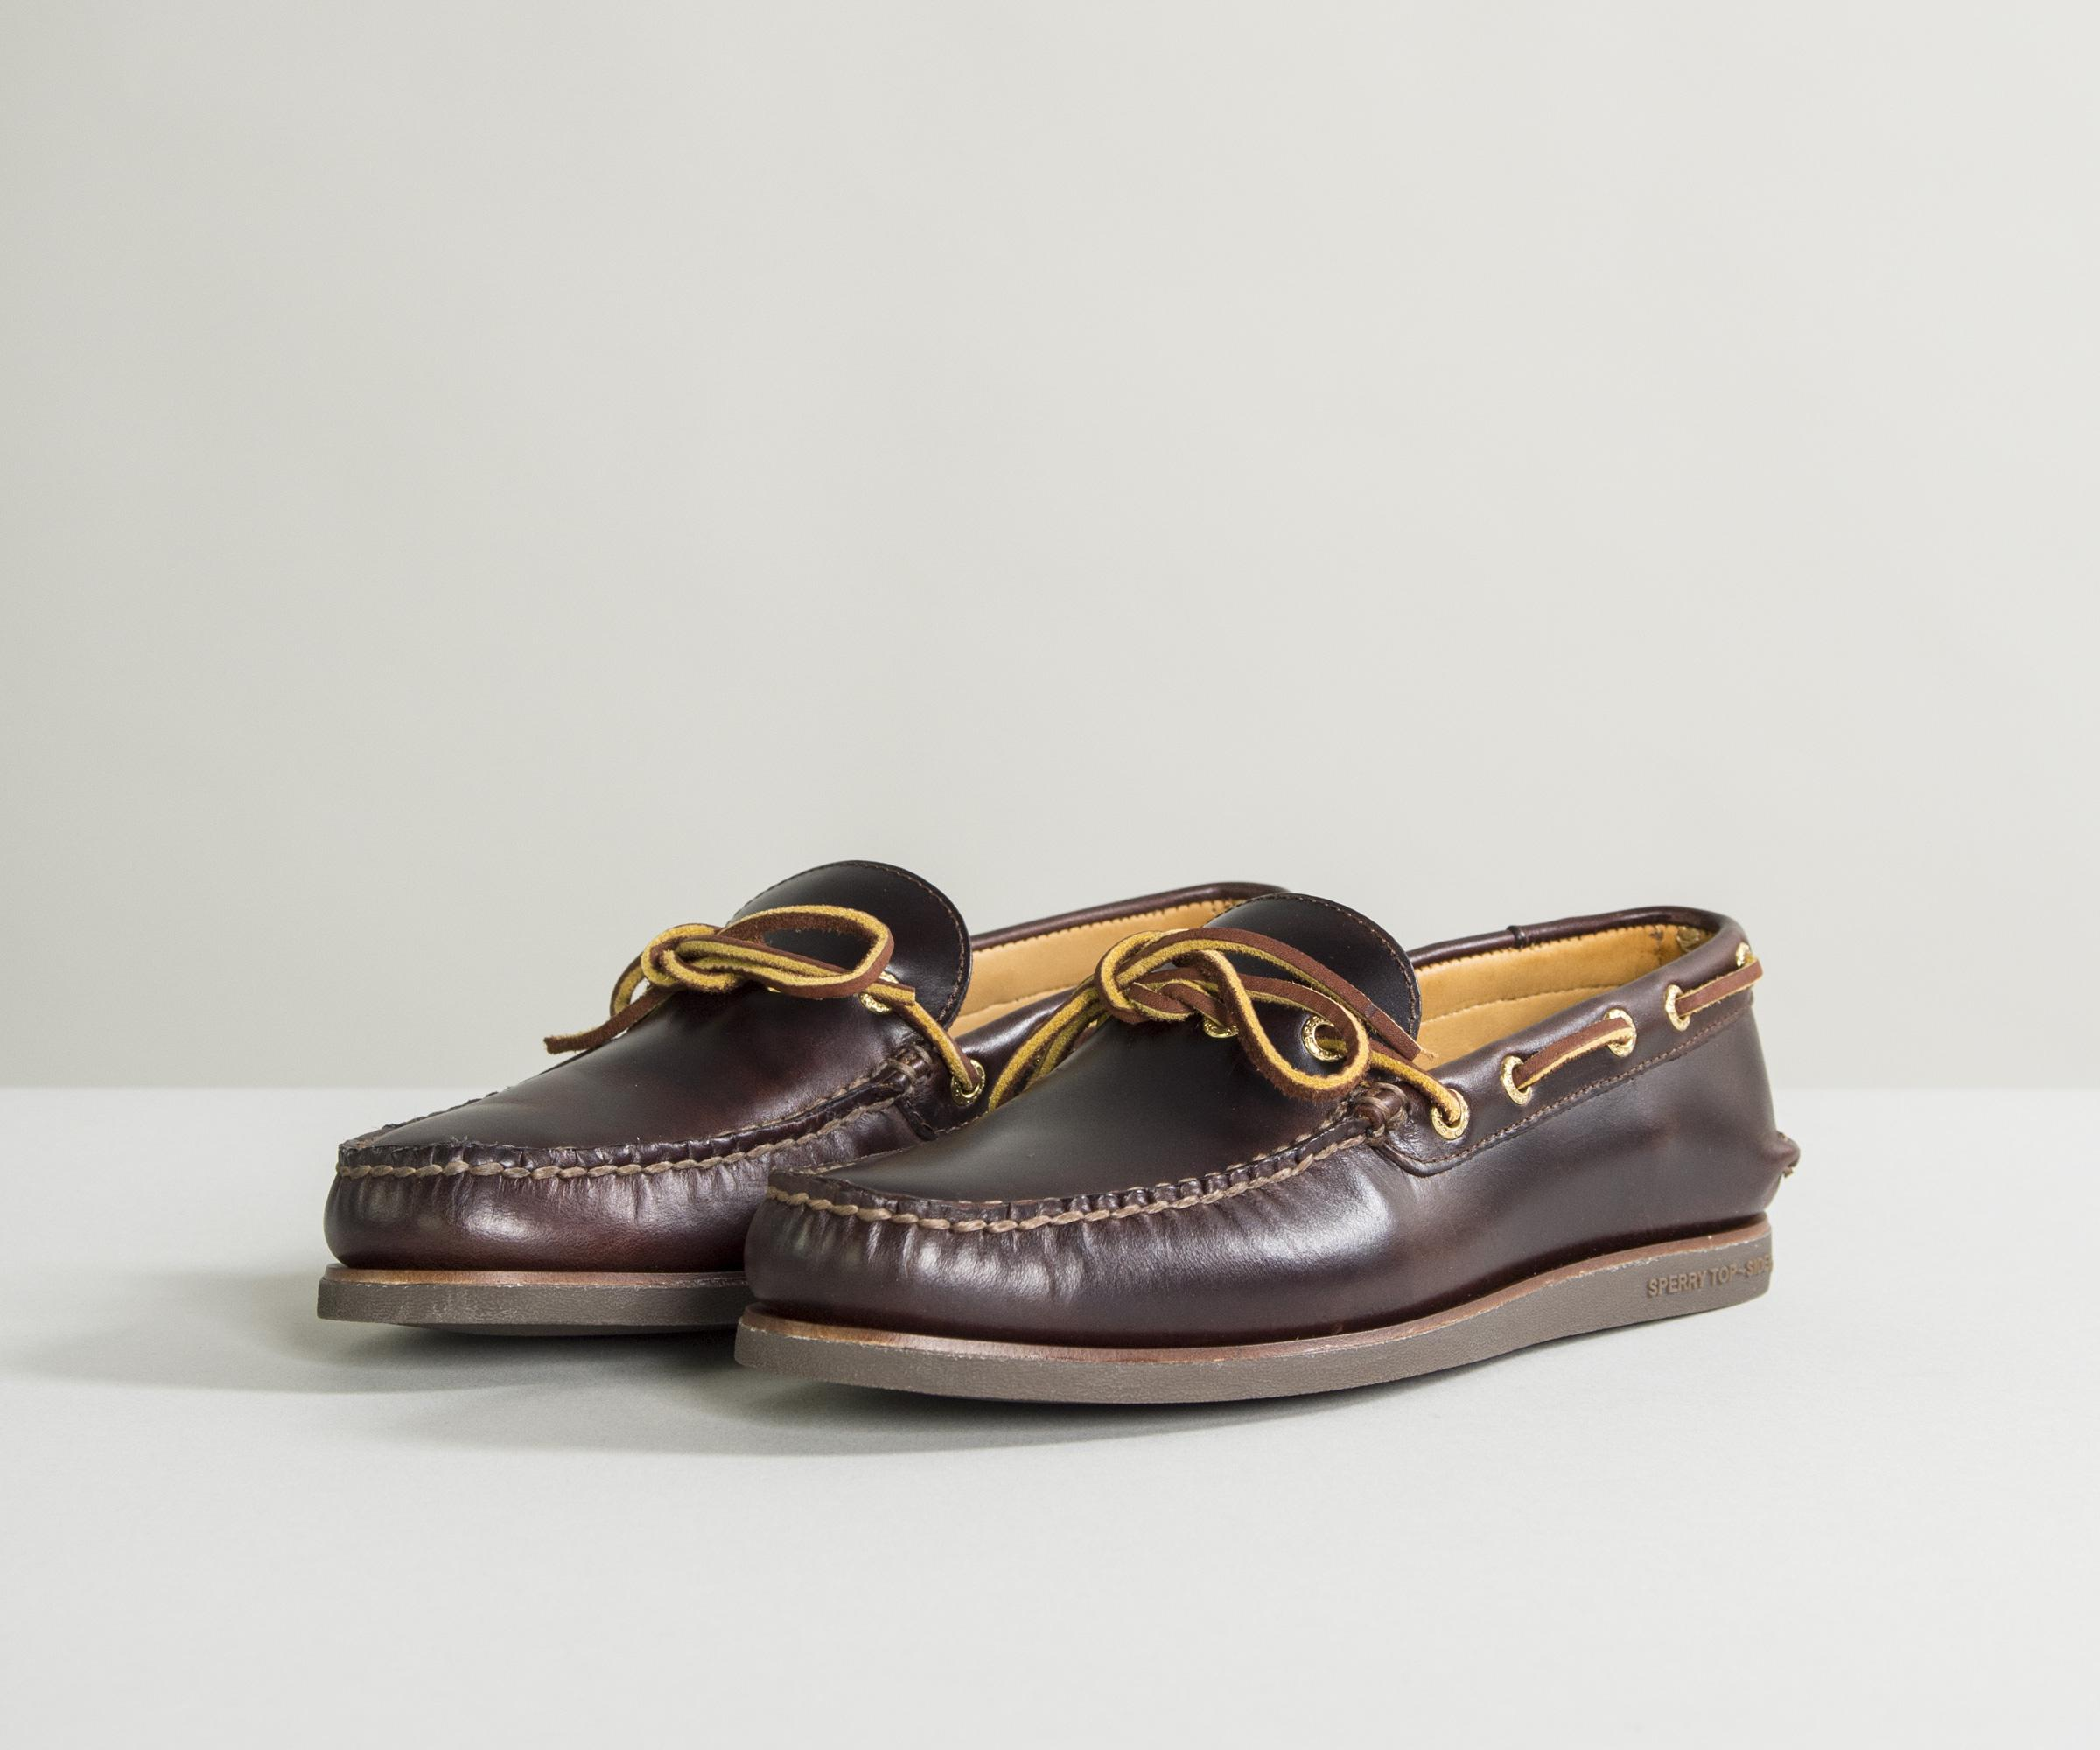 Top-Sider Gold Cup Luxury Deck Shoes Amaretto Sperry Top-Sider l5UUjRlx